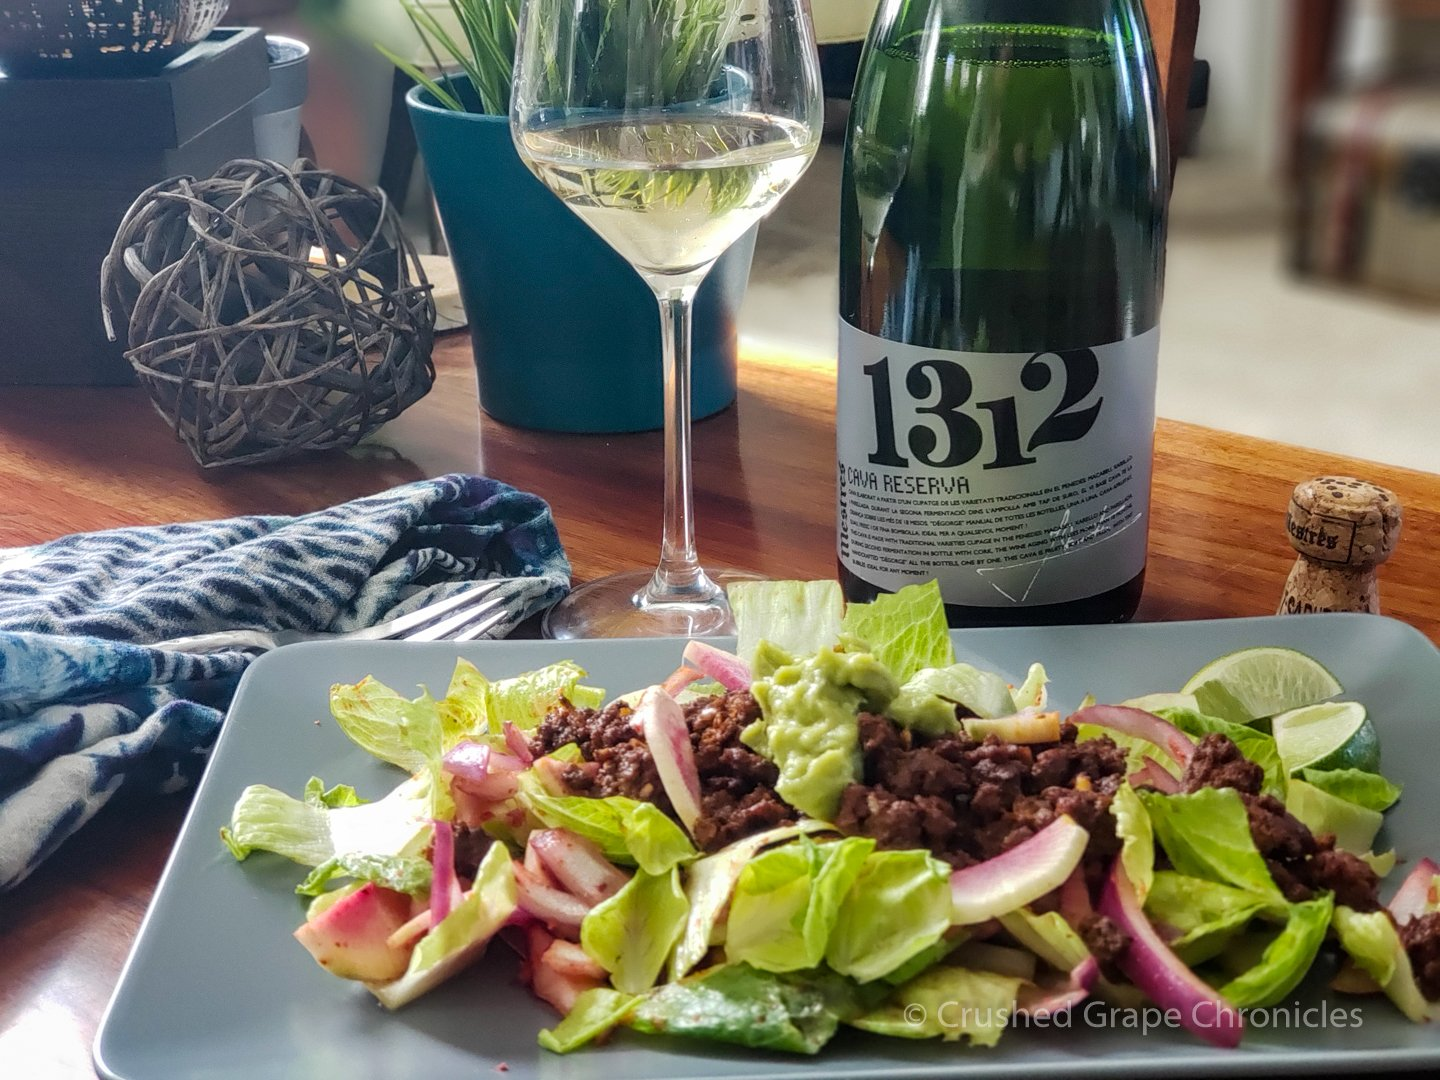 Cava Mestres 1312 and Beef dzik salad